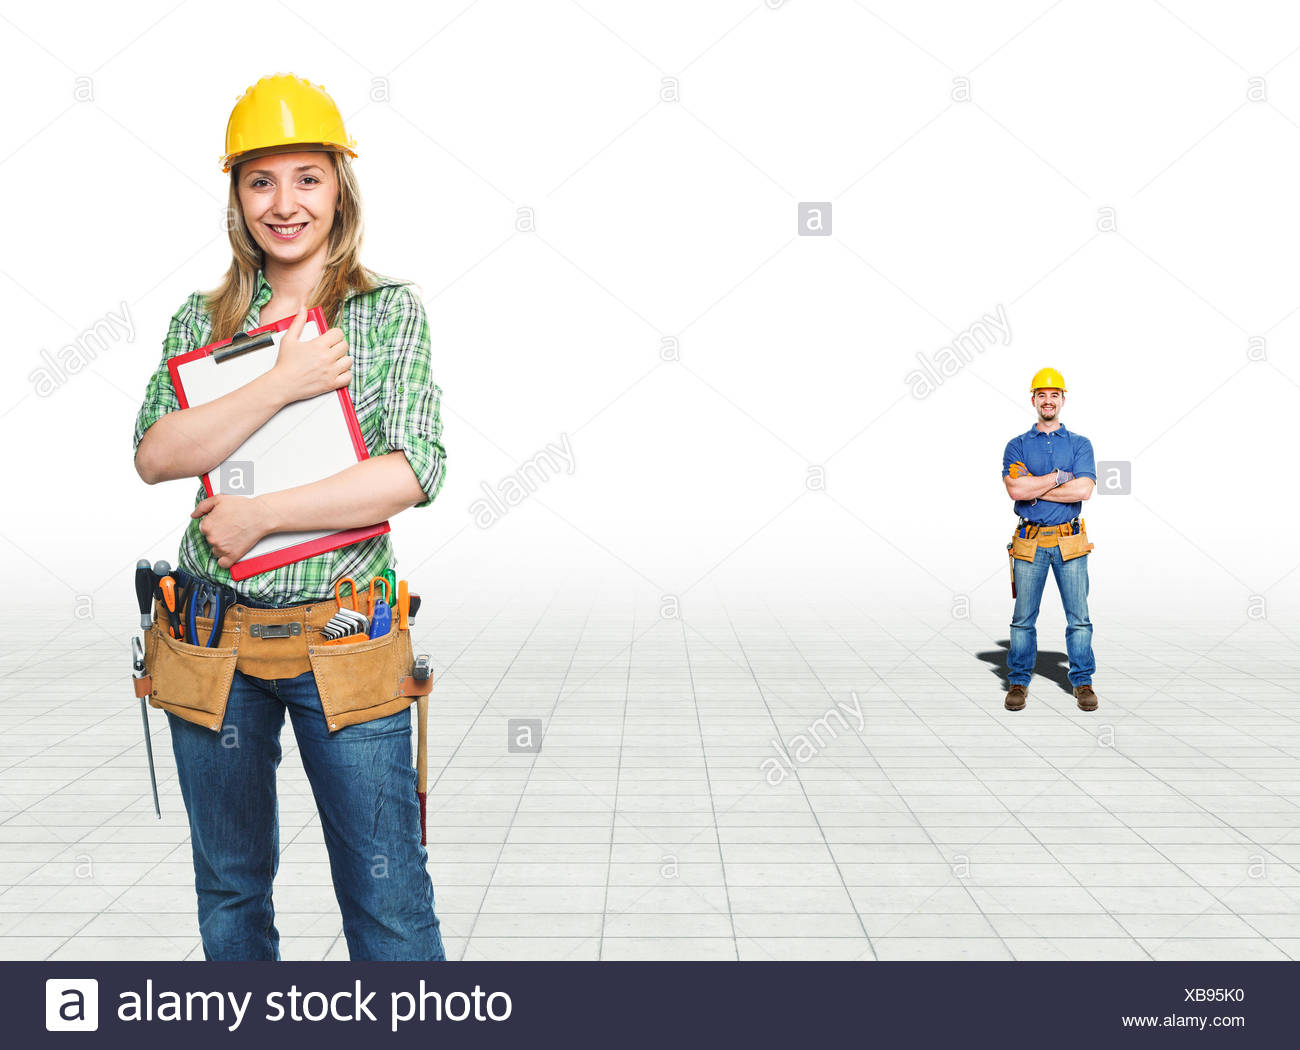 woman, adult, adults, constructor, handyman, workers, laborer, worker, - Stock Image